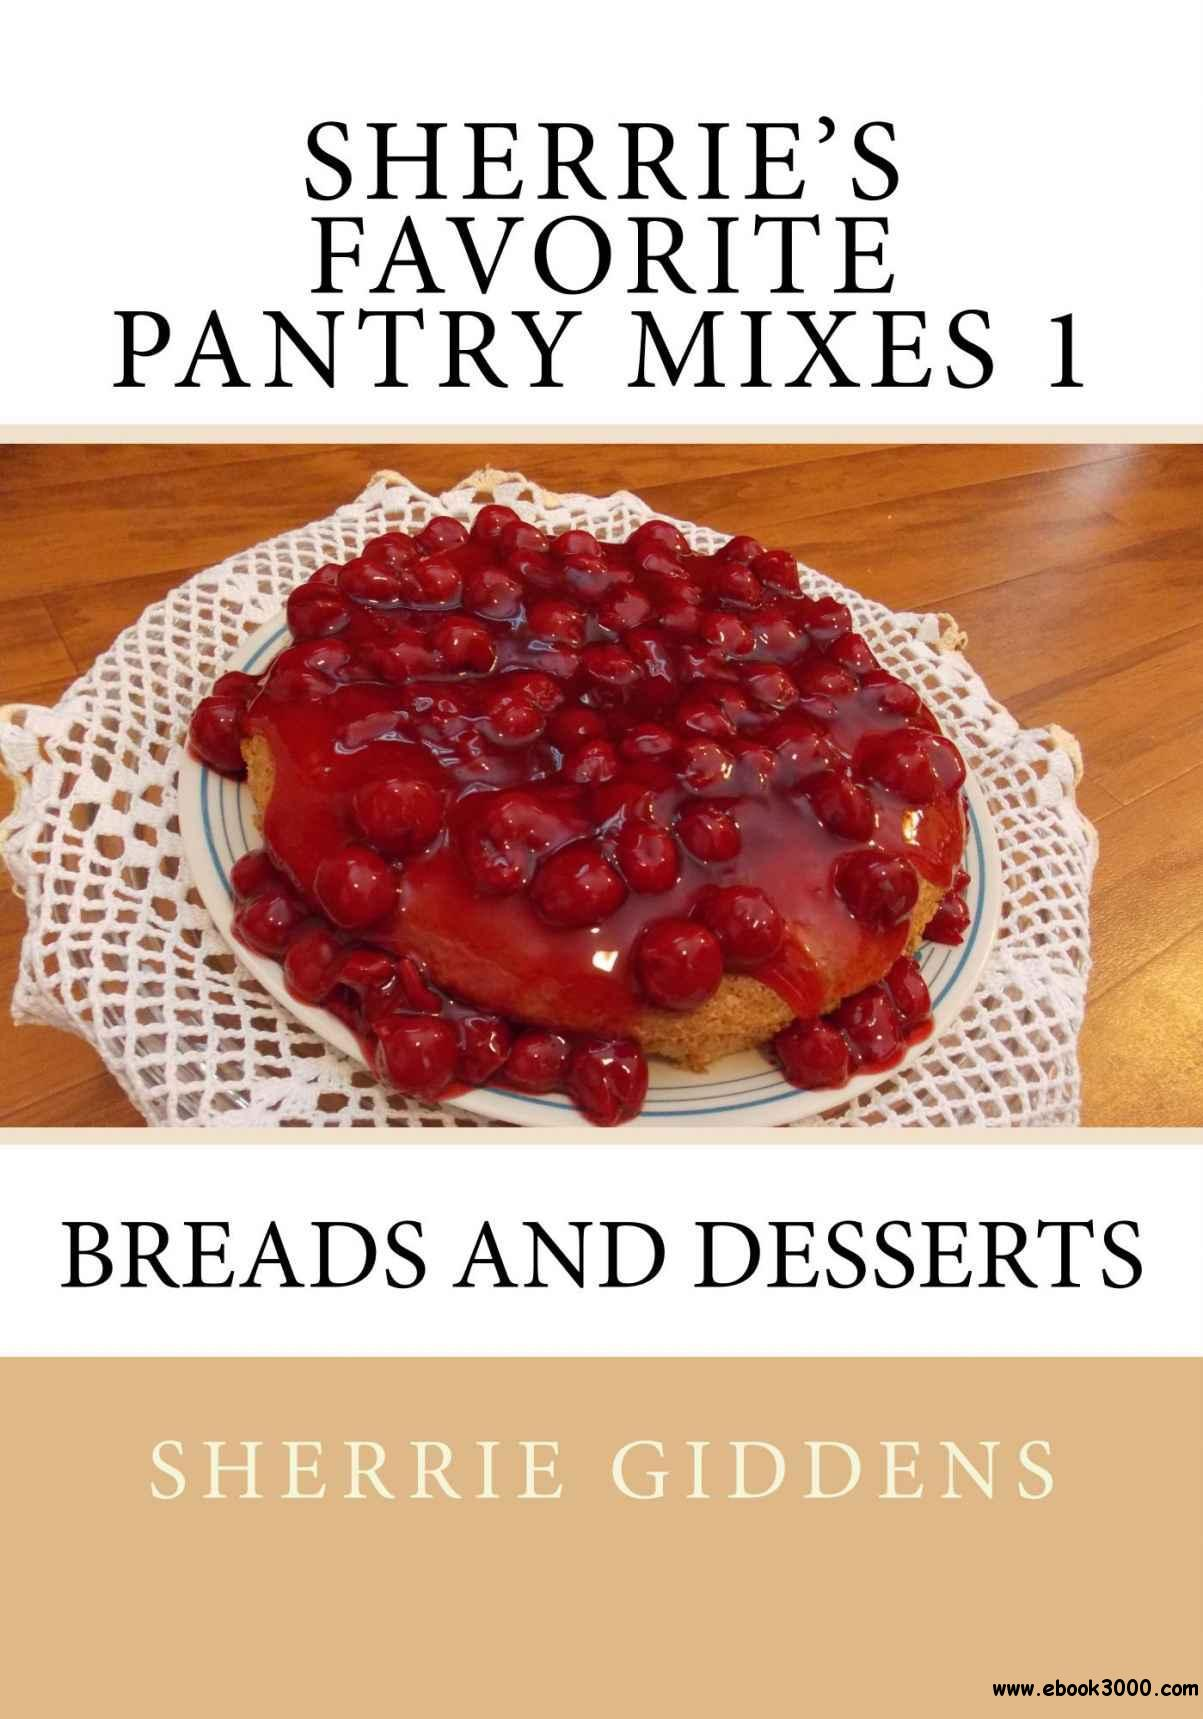 Sherrie's Favorite Pantry Mixes 1: Breads and Desserts free download